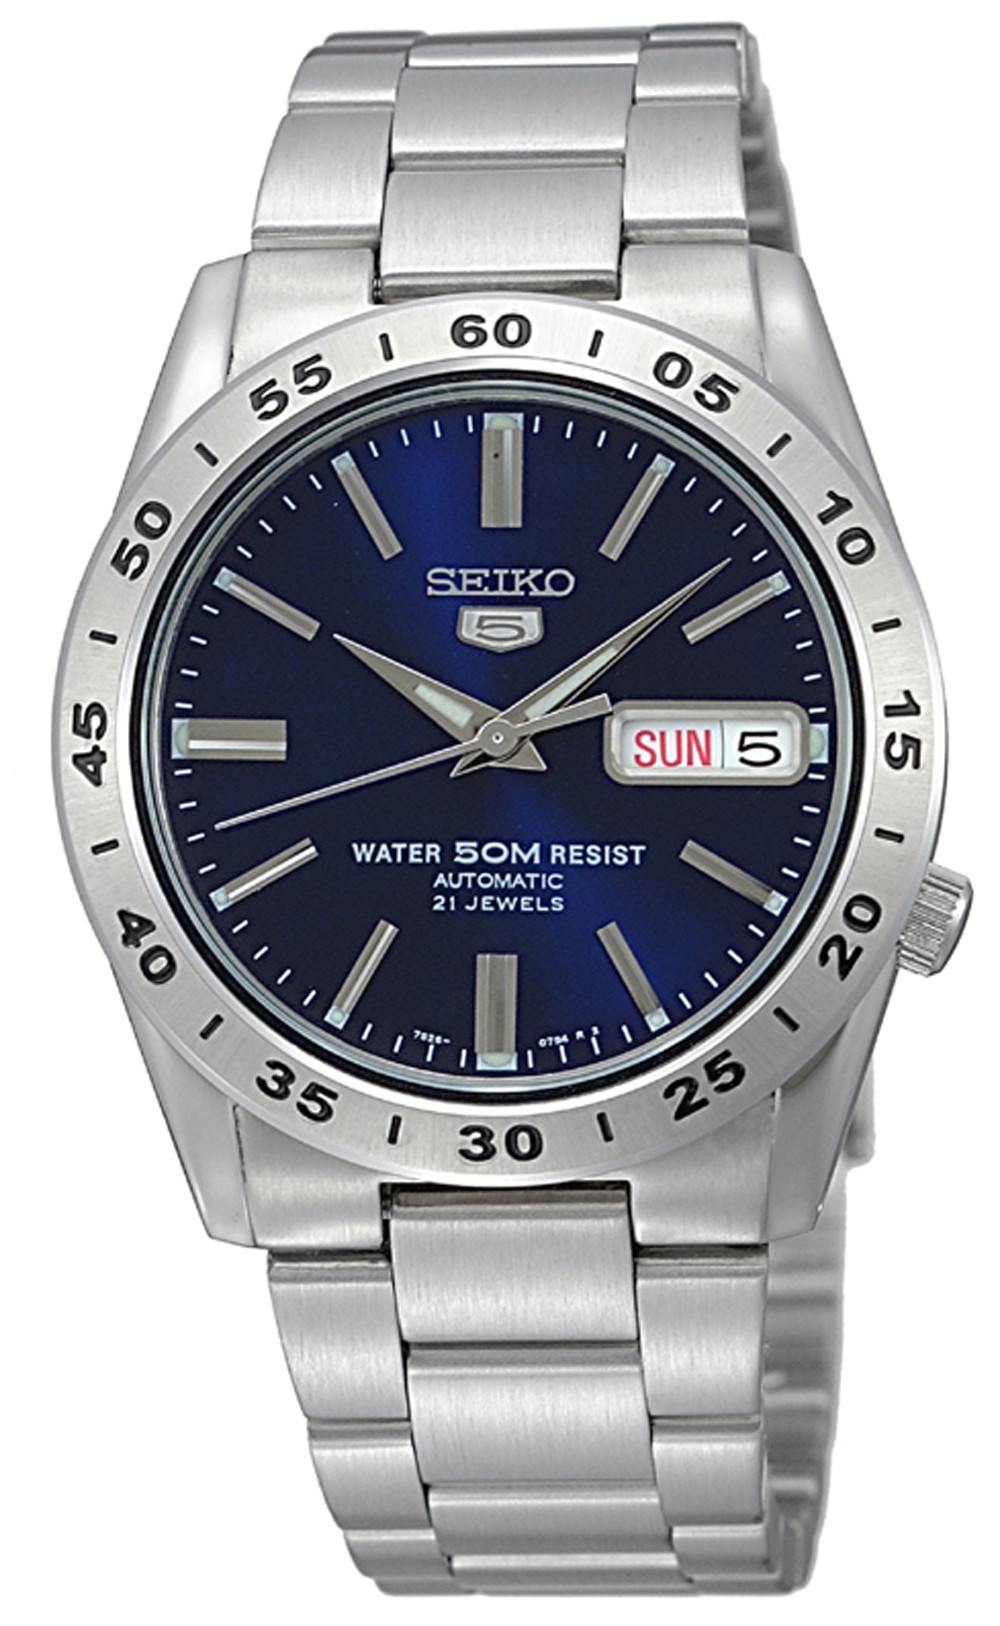 82f16c2a1 ... Seiko 5 Automatic Blue Dial Silver Stainless Steel Mens Watch SNKD99K1  37mm. Sale! 🔍. show more pictures